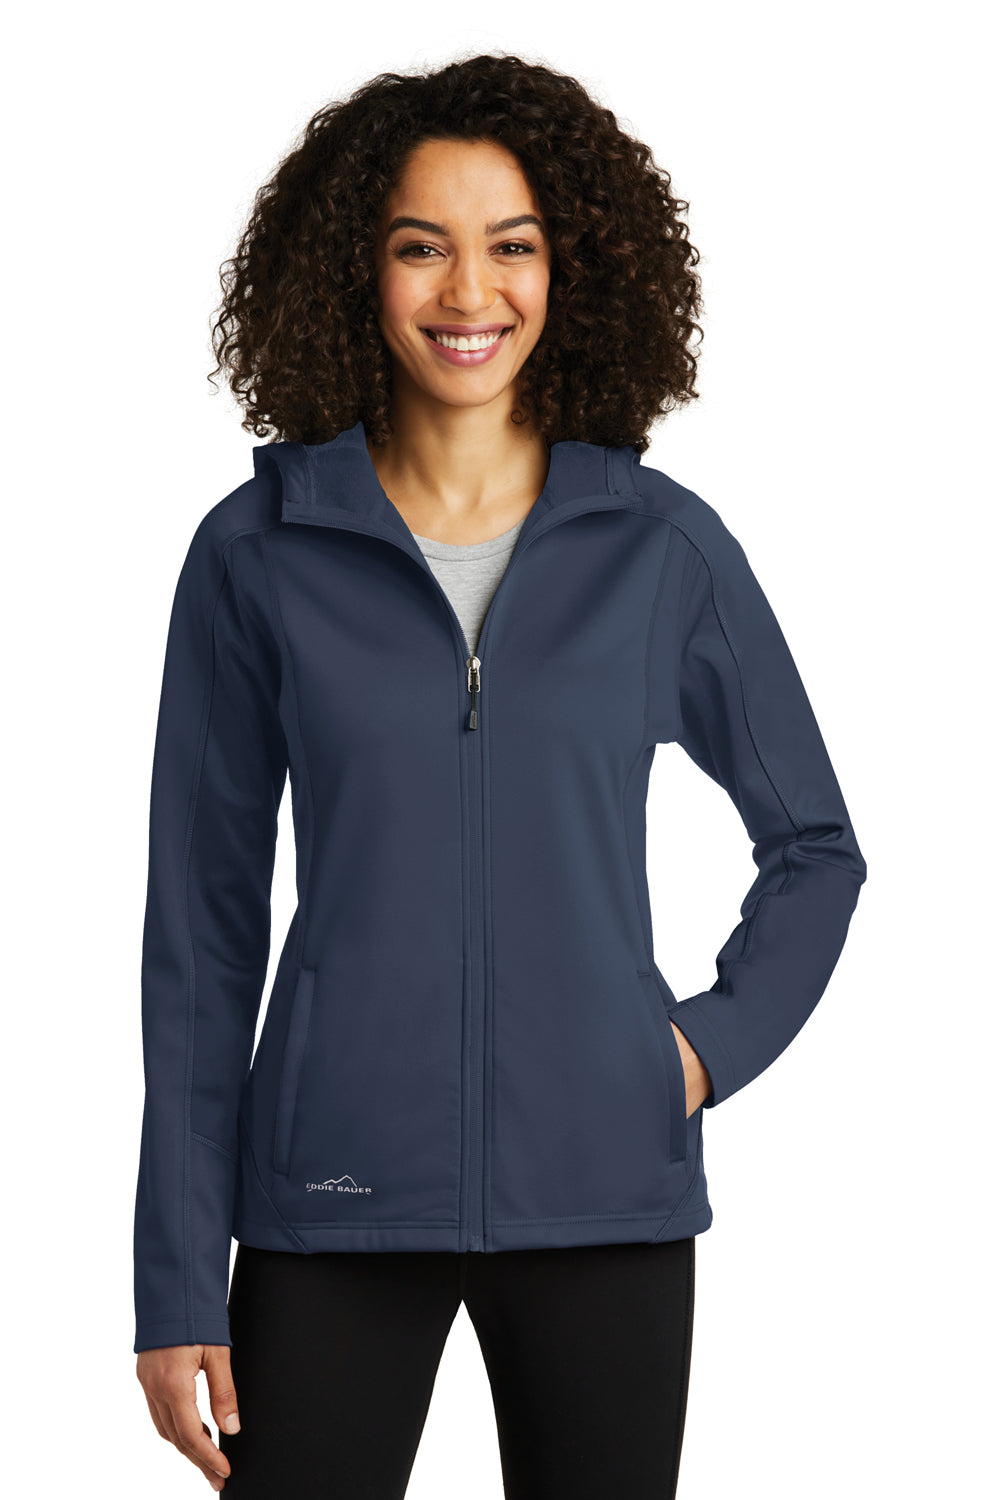 Eddie Bauer EB543 Womens Trail Water Resistant Full Zip Hooded Jacket River Blue Front